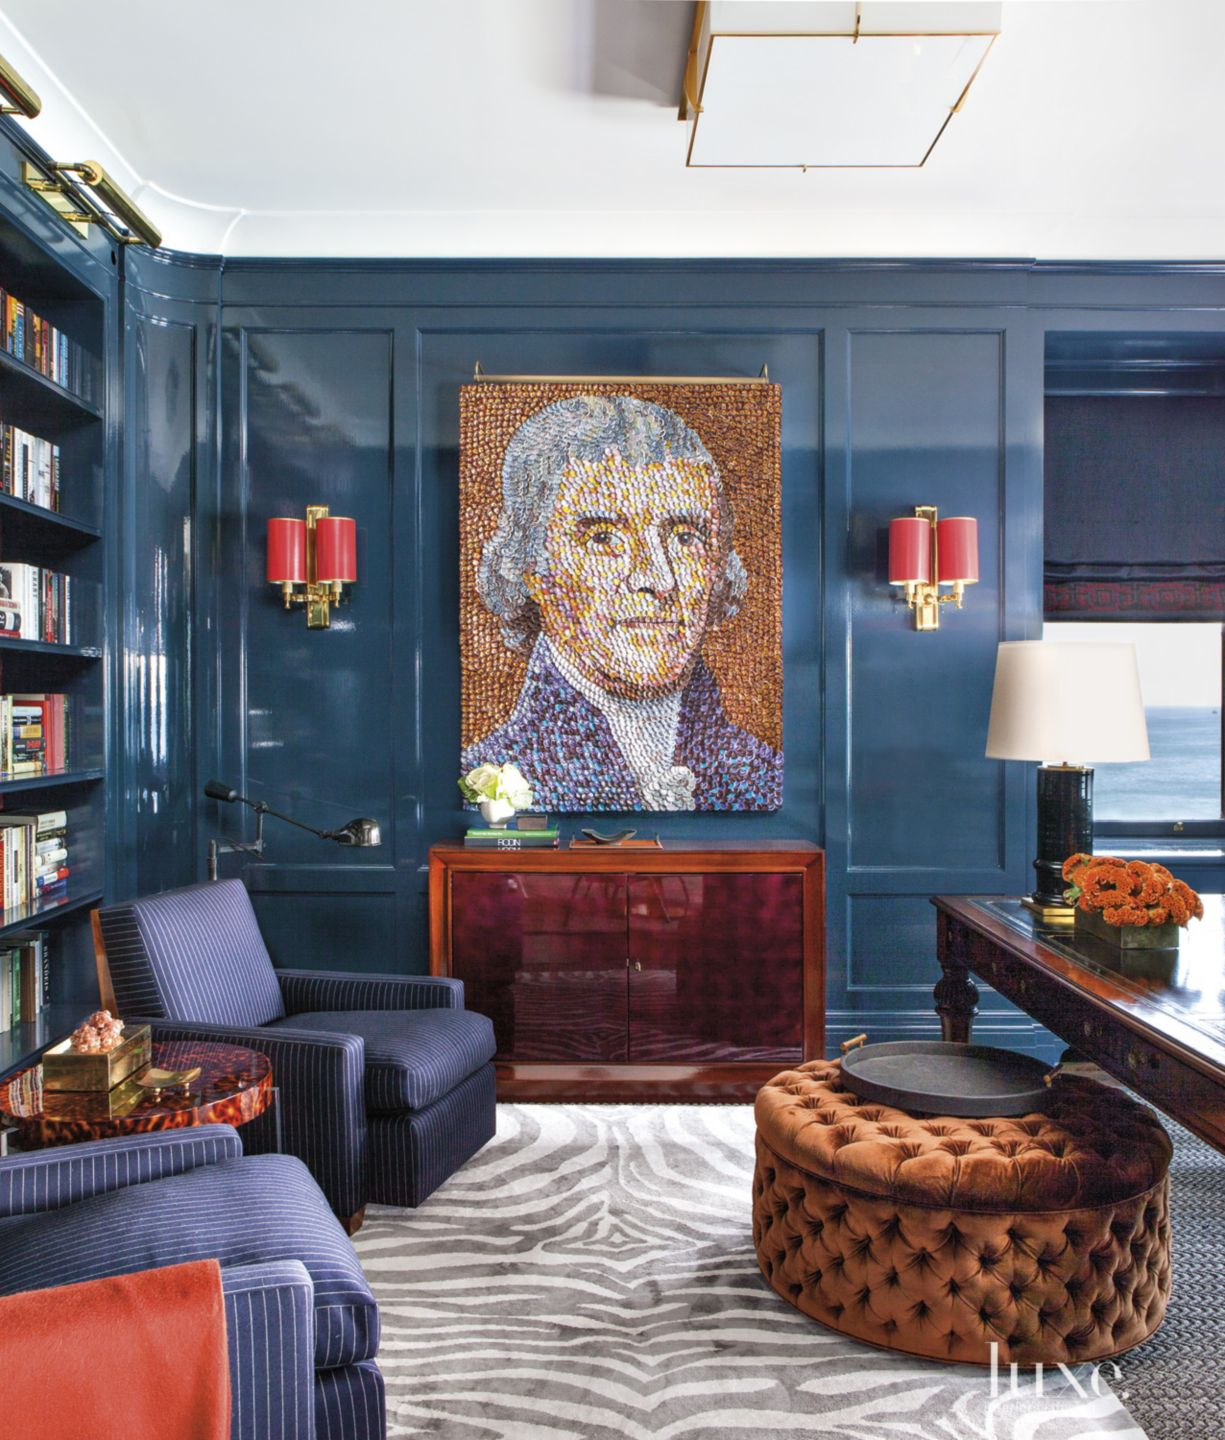 We Got A Sense You'd Be Looking For Blue Room Inspo, Thanks To Pantone